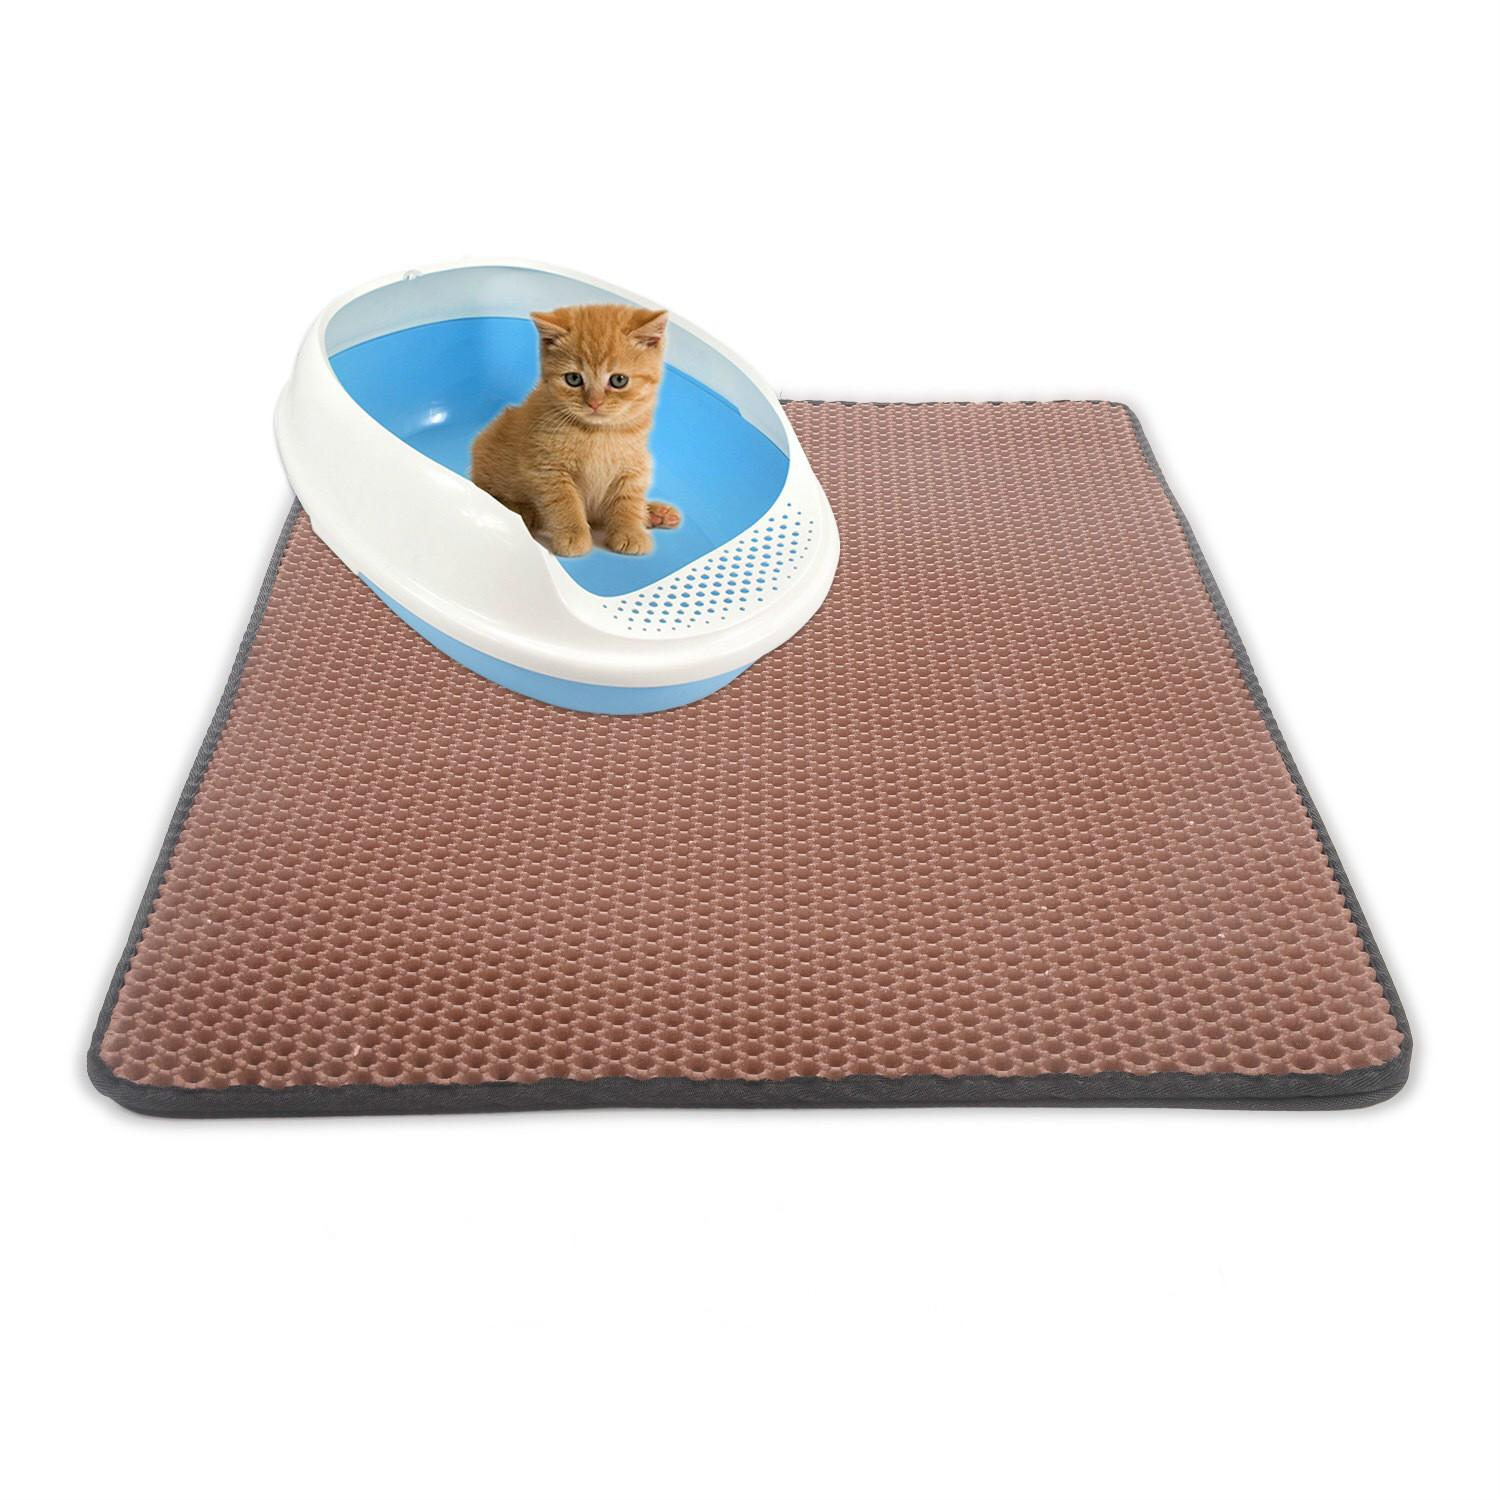 Pet lettiera Mat EVA Double-Layer Lettiera Trapper Mats con strato inferiore impermeabile antiscivolo pet lettiera del gatto nero mat Bed